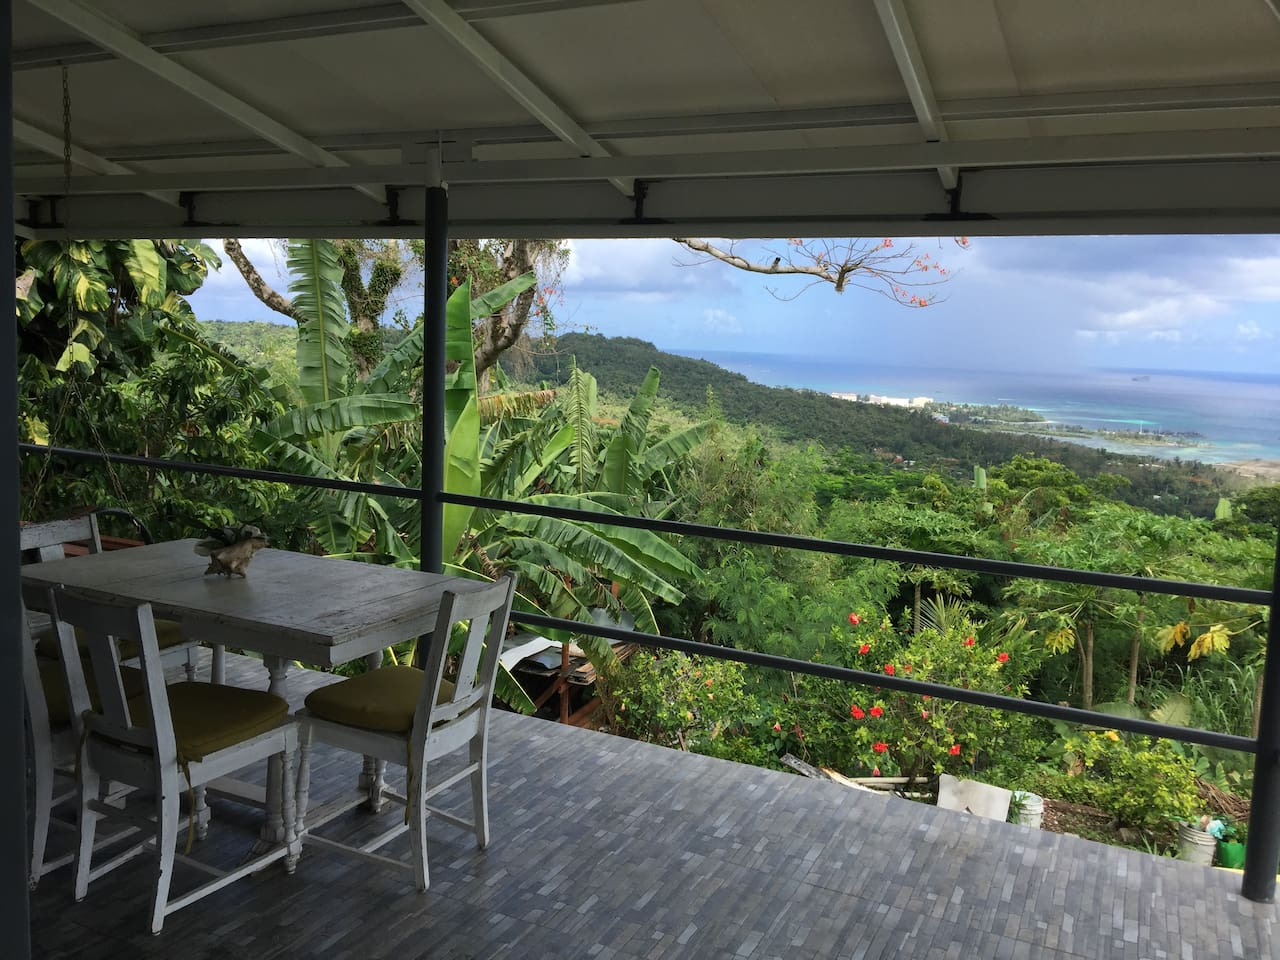 Breakfast, lunch, and dinner with a view